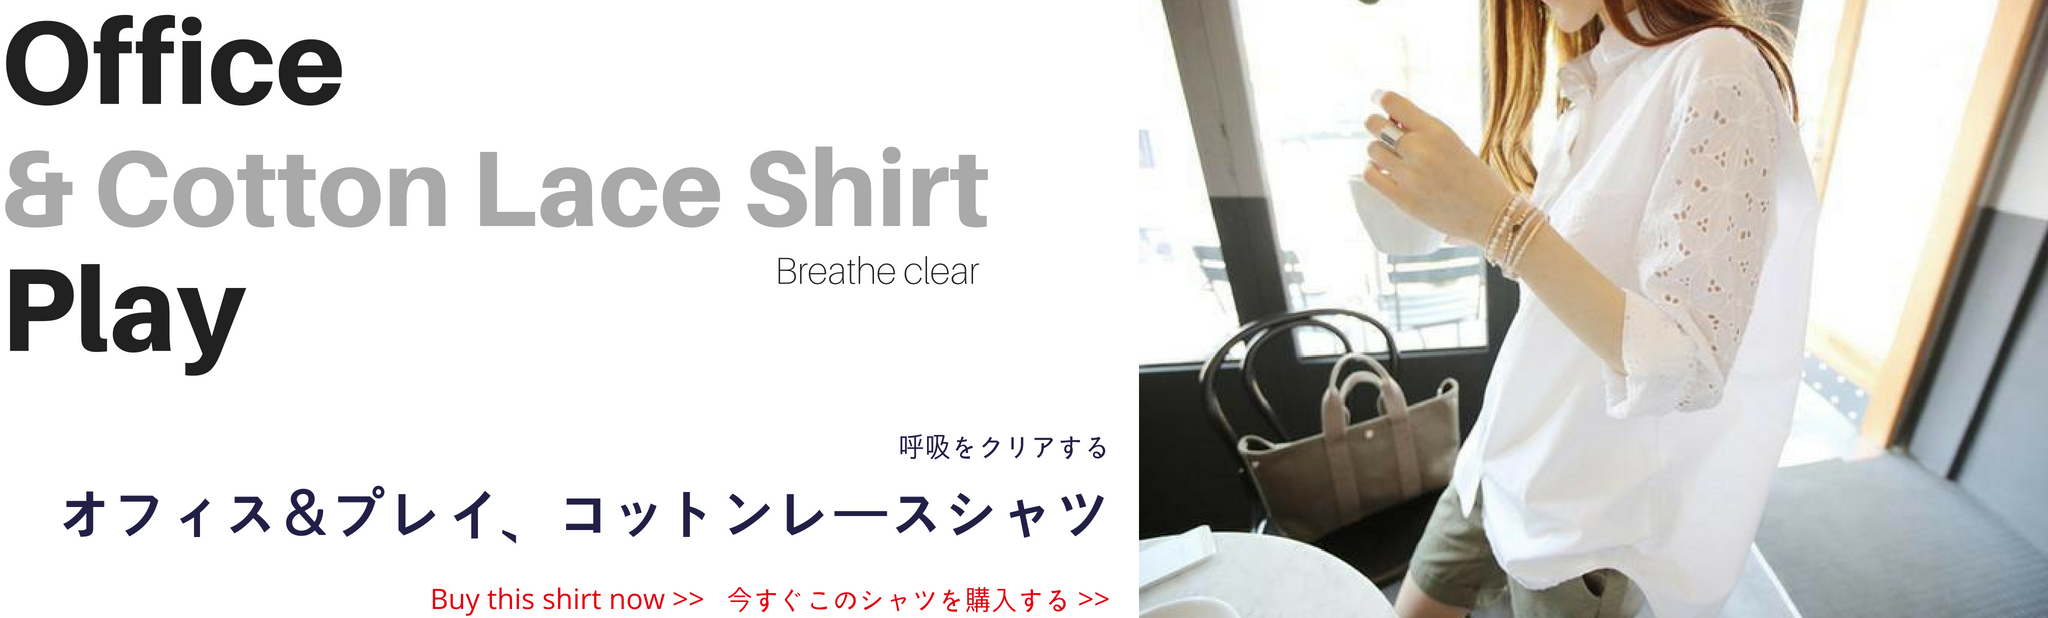 miTeigi Womans Shirts Collection - Office and Play Cotton Lace Shirt オフィス&プレイ、コットンレースシャツ